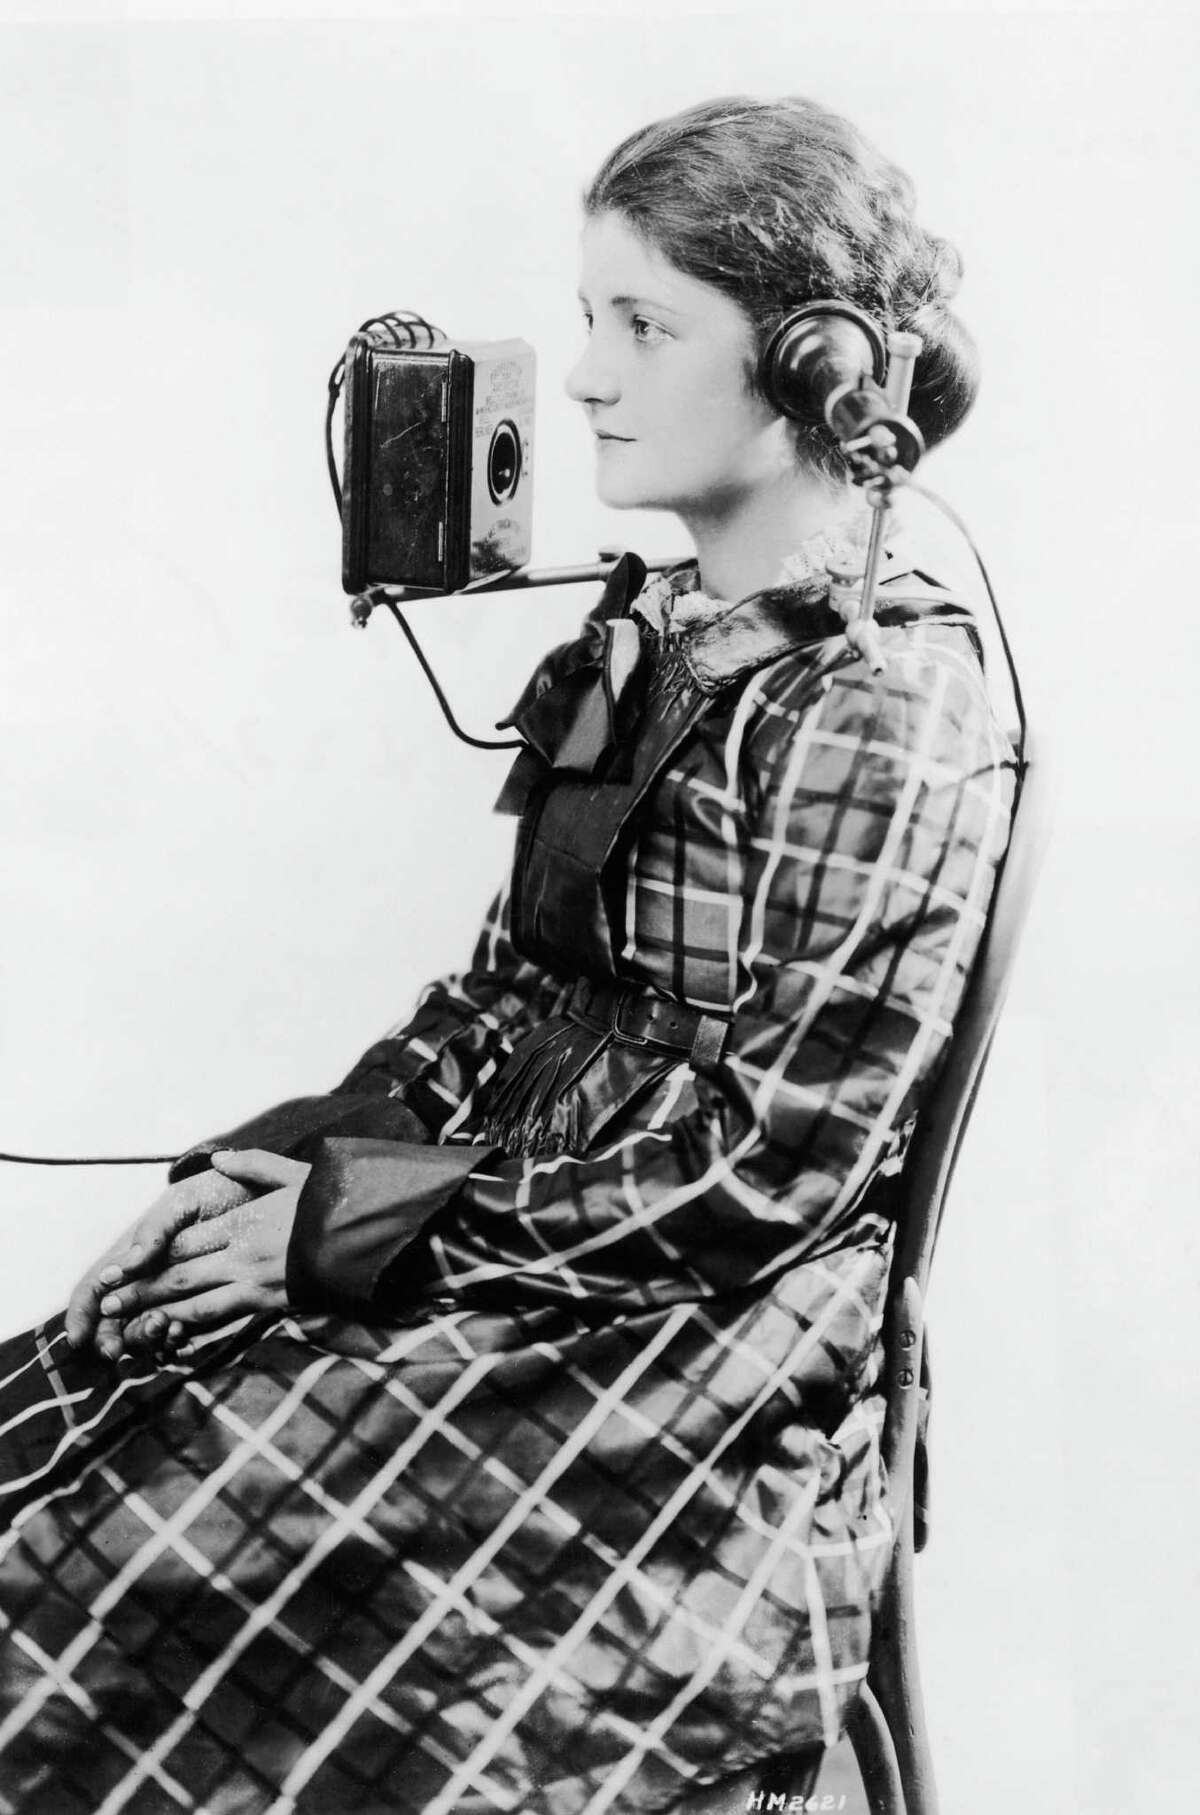 The American Bell Telephone Company devised this portable headset, shown on a telephone operator in 1923.